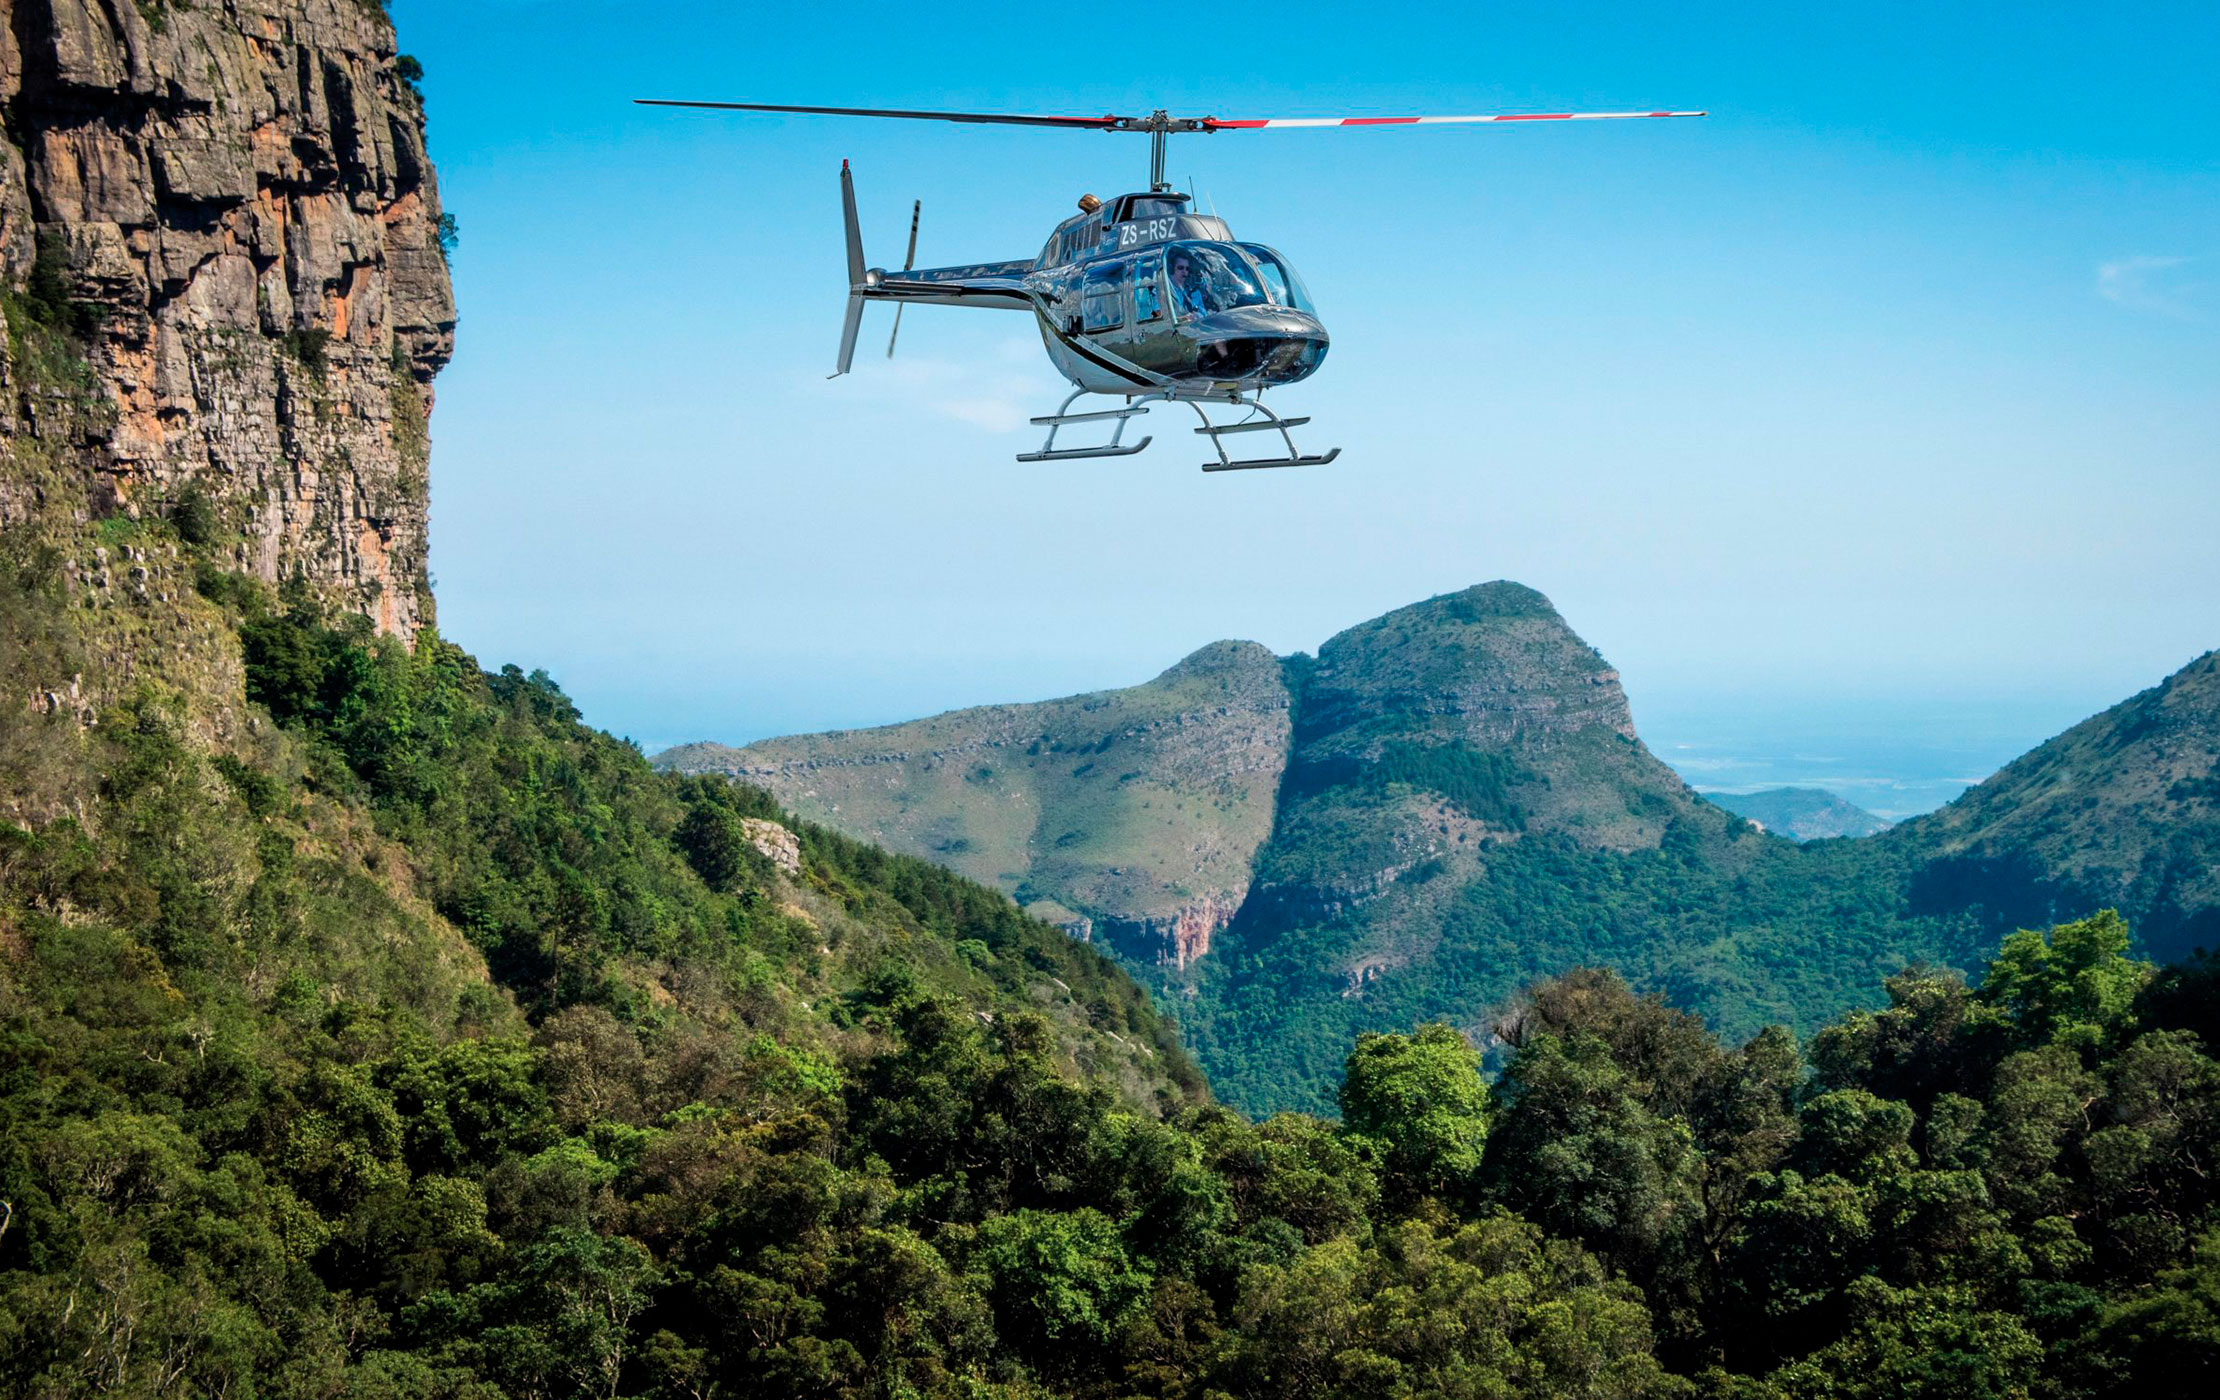 A helicopter flying over South Africa's Grandest Canyon